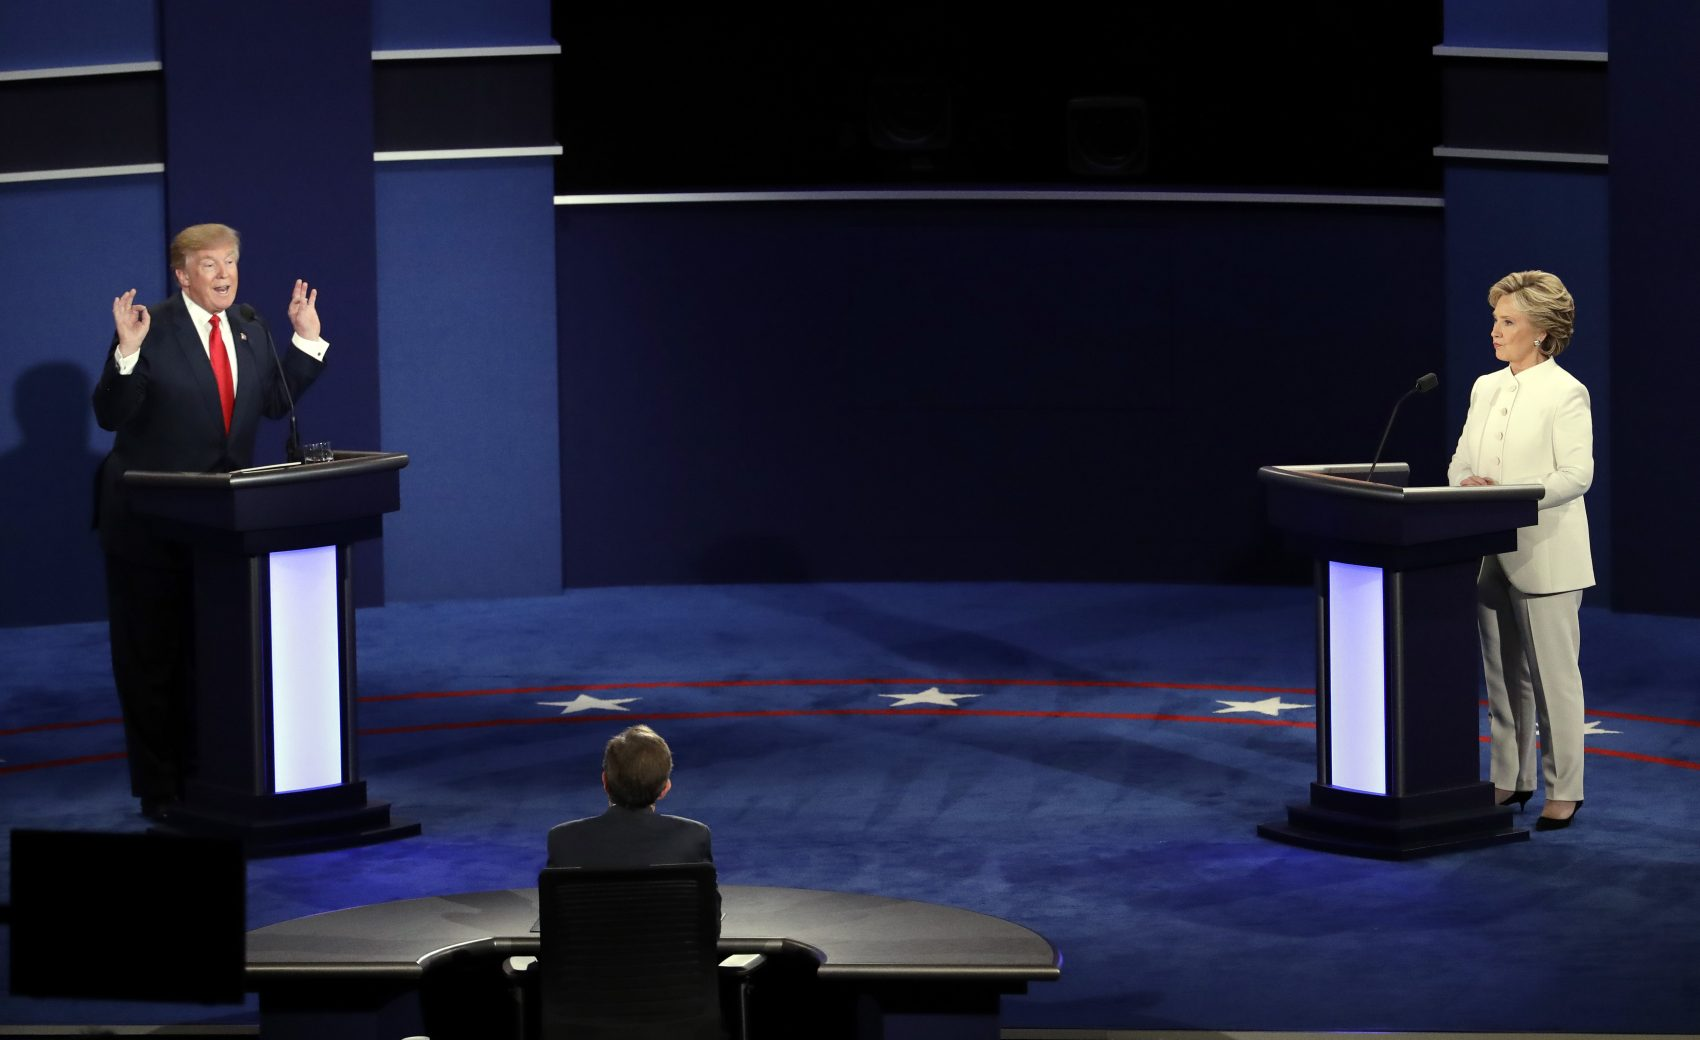 Republican presidential nominee Donald Trump debates Democratic presidential nominee Hillary Clinton during the third presidential debate at UNLV in Las Vegas, Wednesday, Oct. 19, 2016. (Julio Cortez/AP)